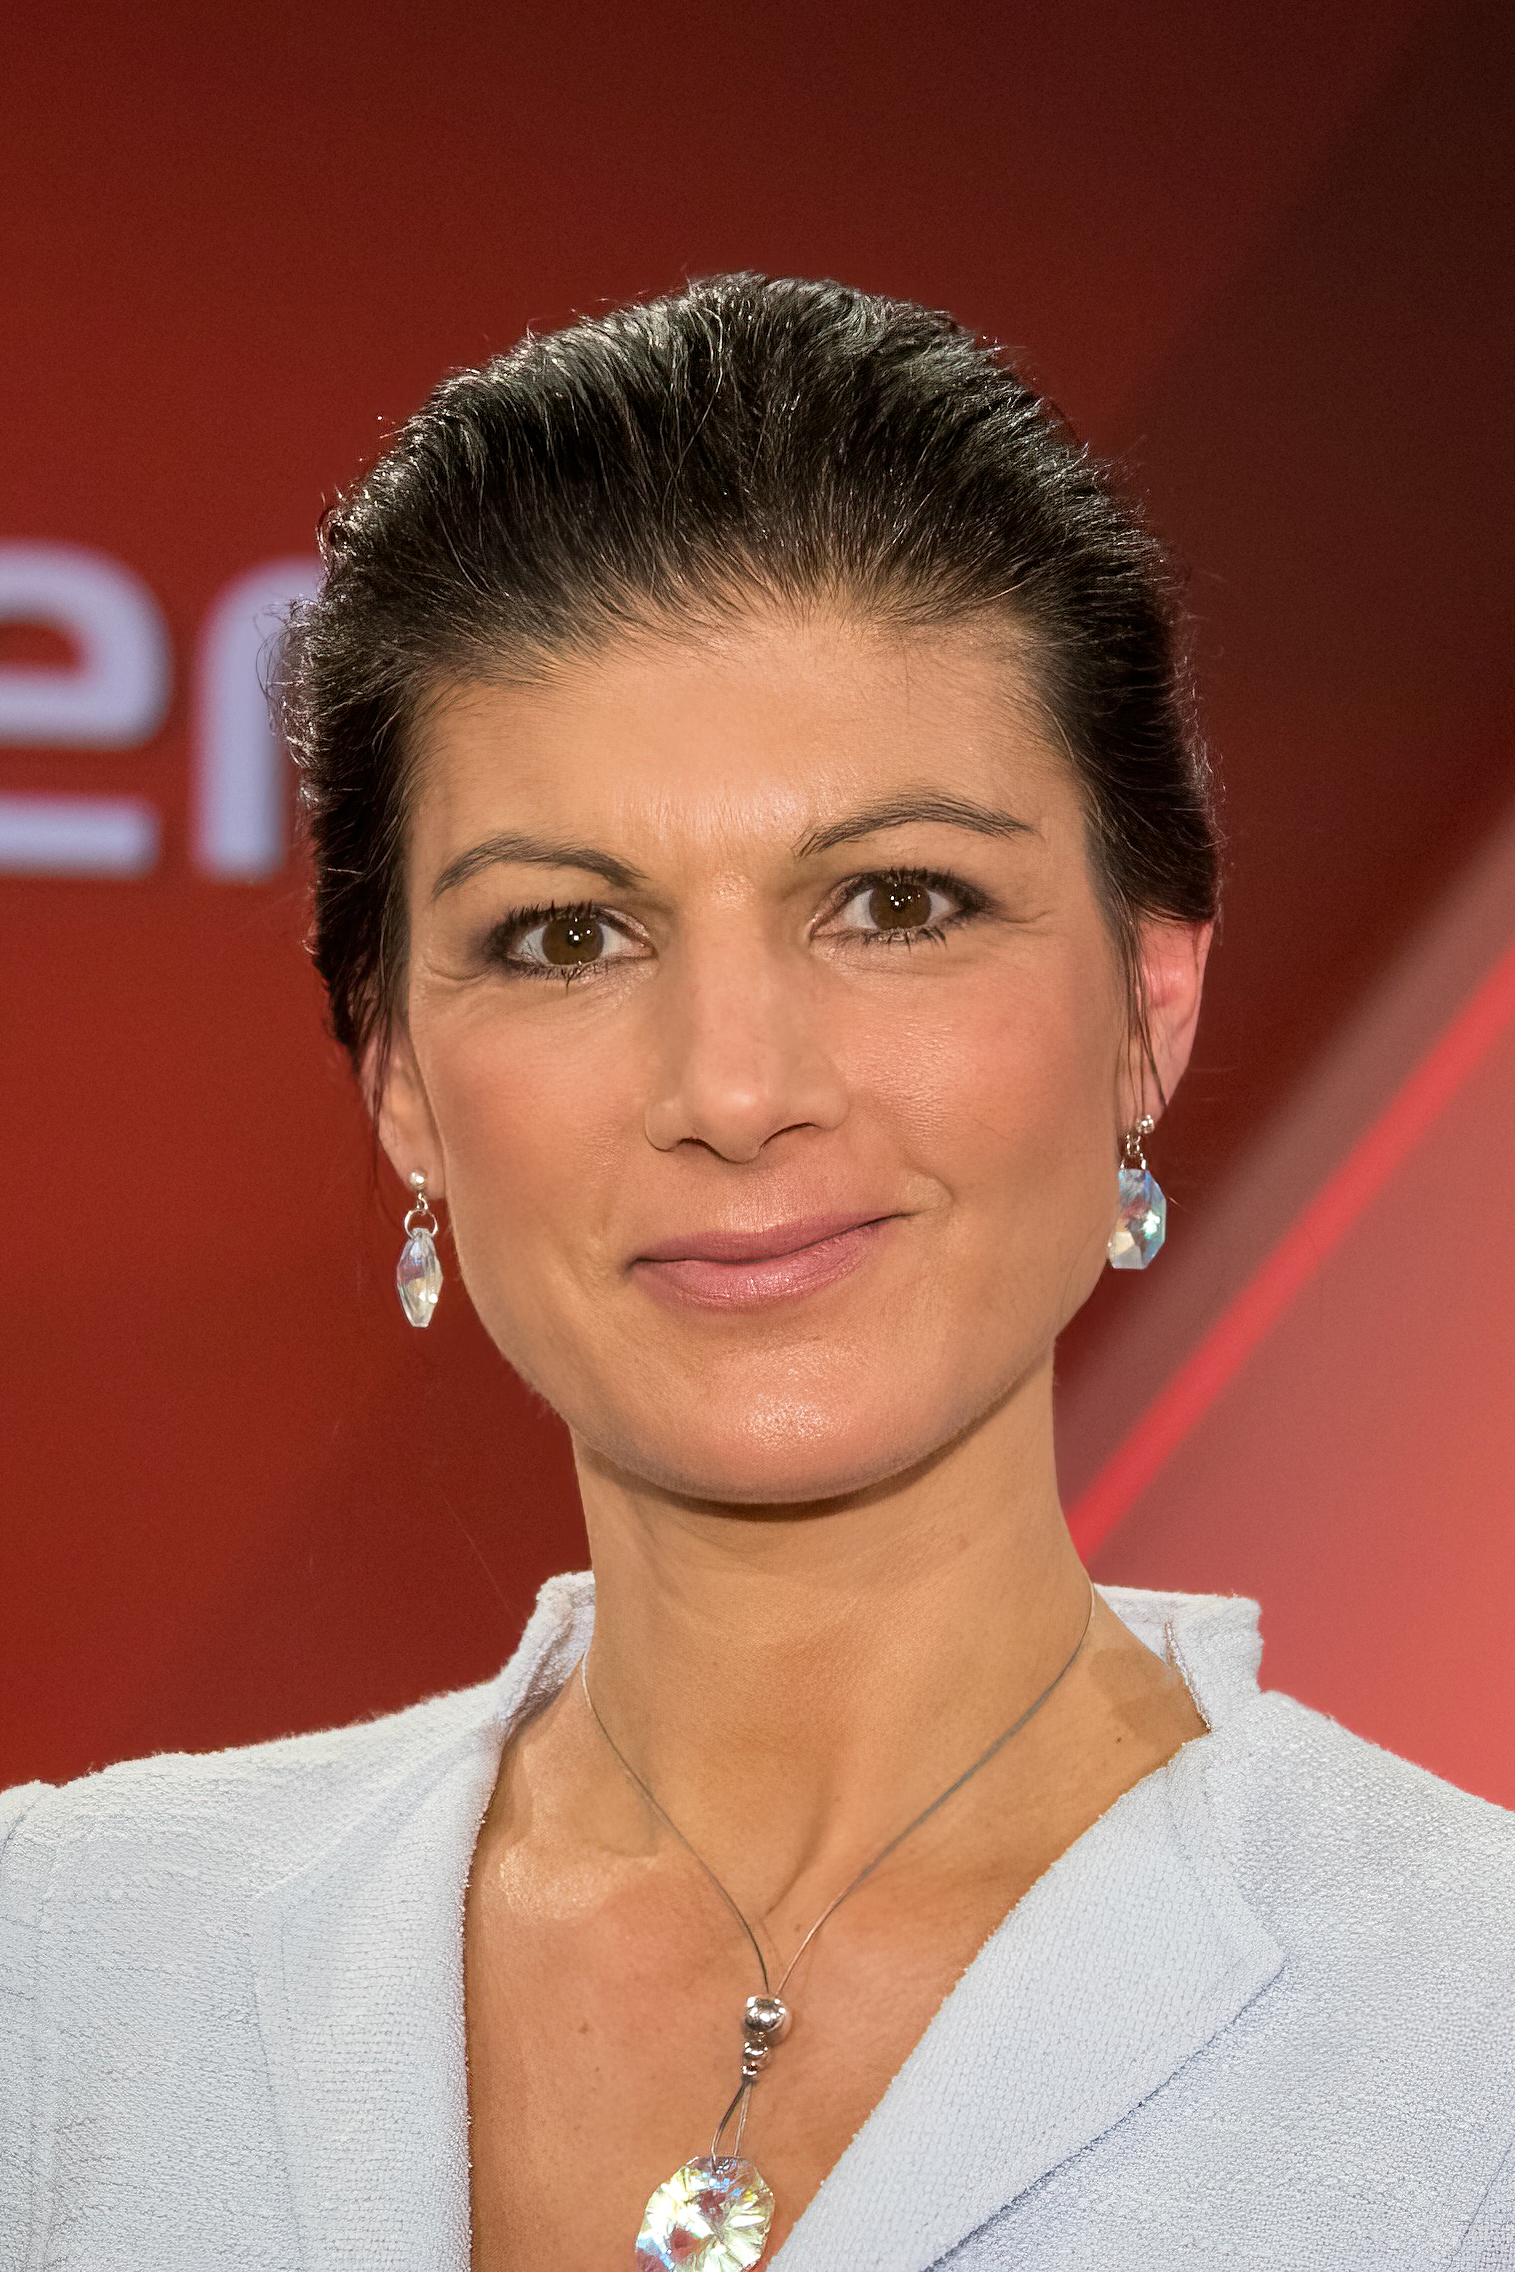 Image result for Sahra Wagenknecht